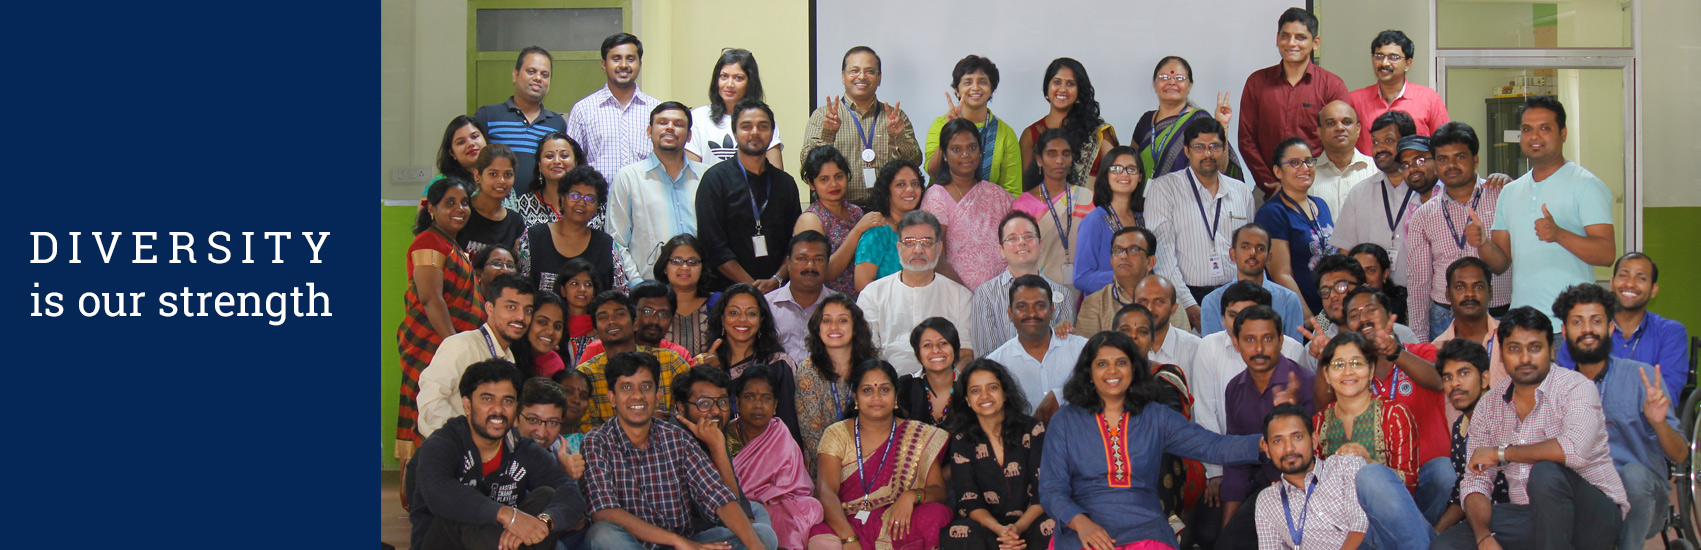 Enable India Staff Photo with text Diversity is our strength